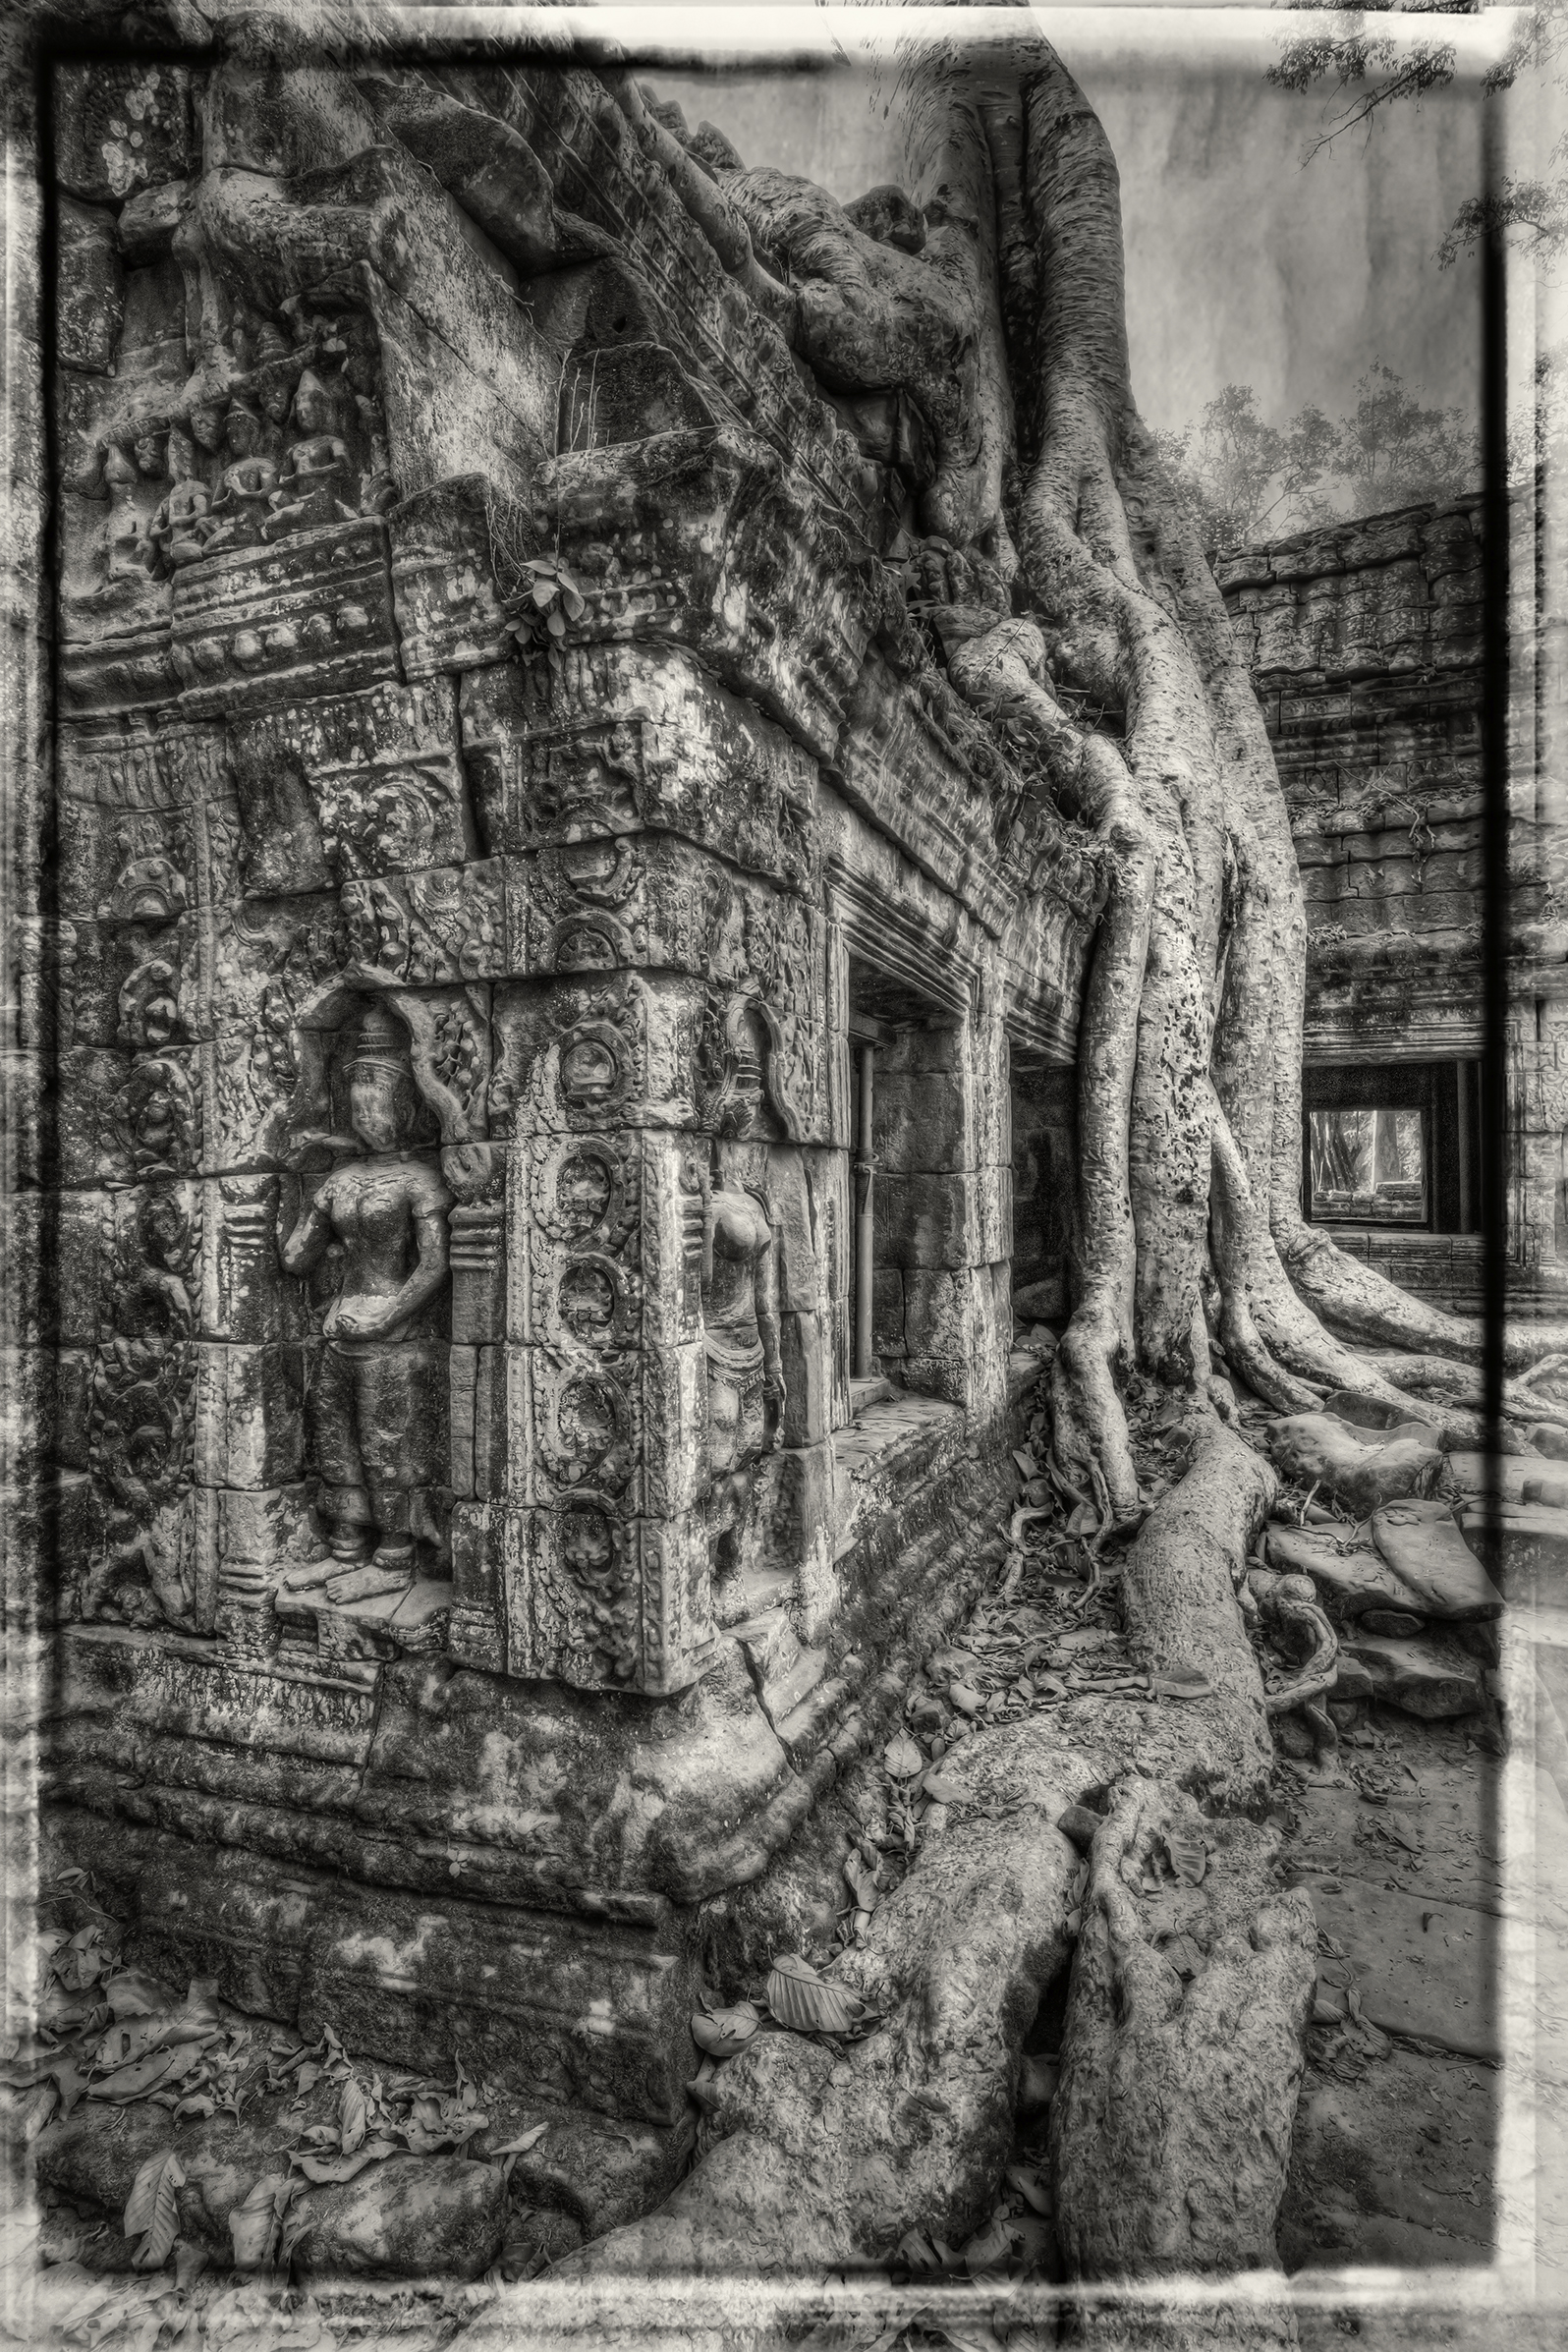 Inside the Ta Prohm Temple in Cambodia